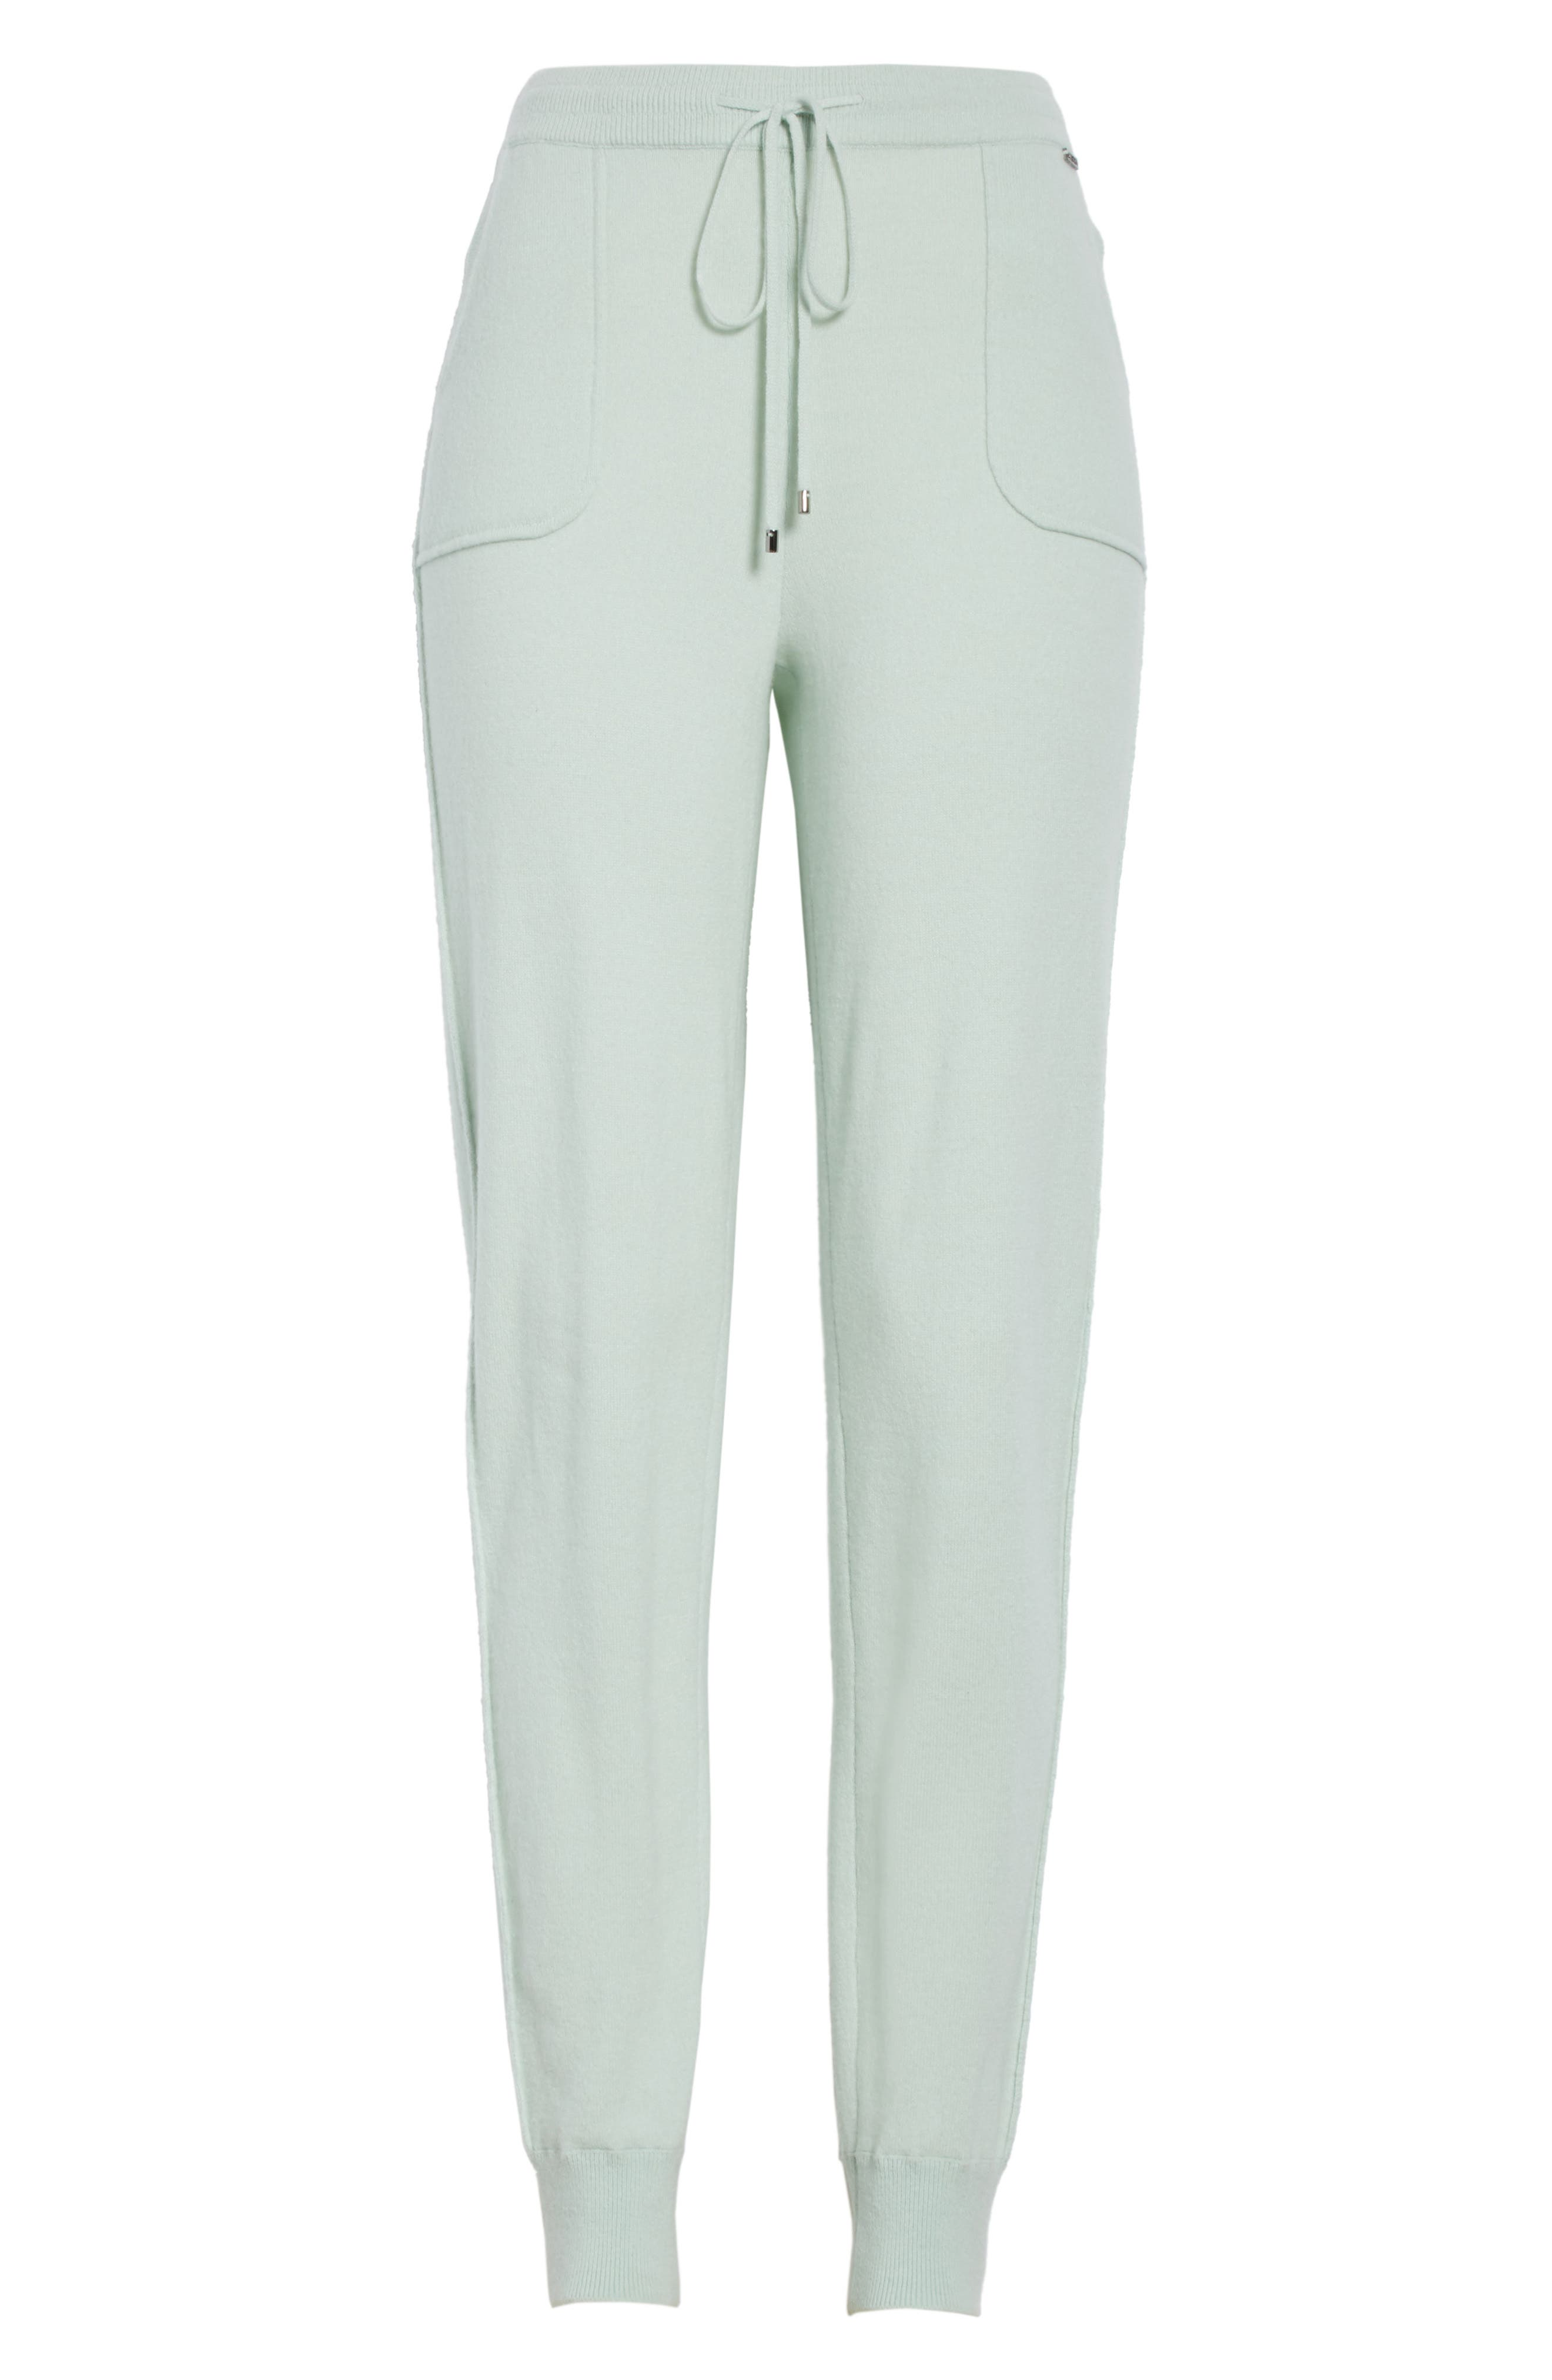 Cashmere Jersey Sweatpants,                             Alternate thumbnail 7, color,                             Mint